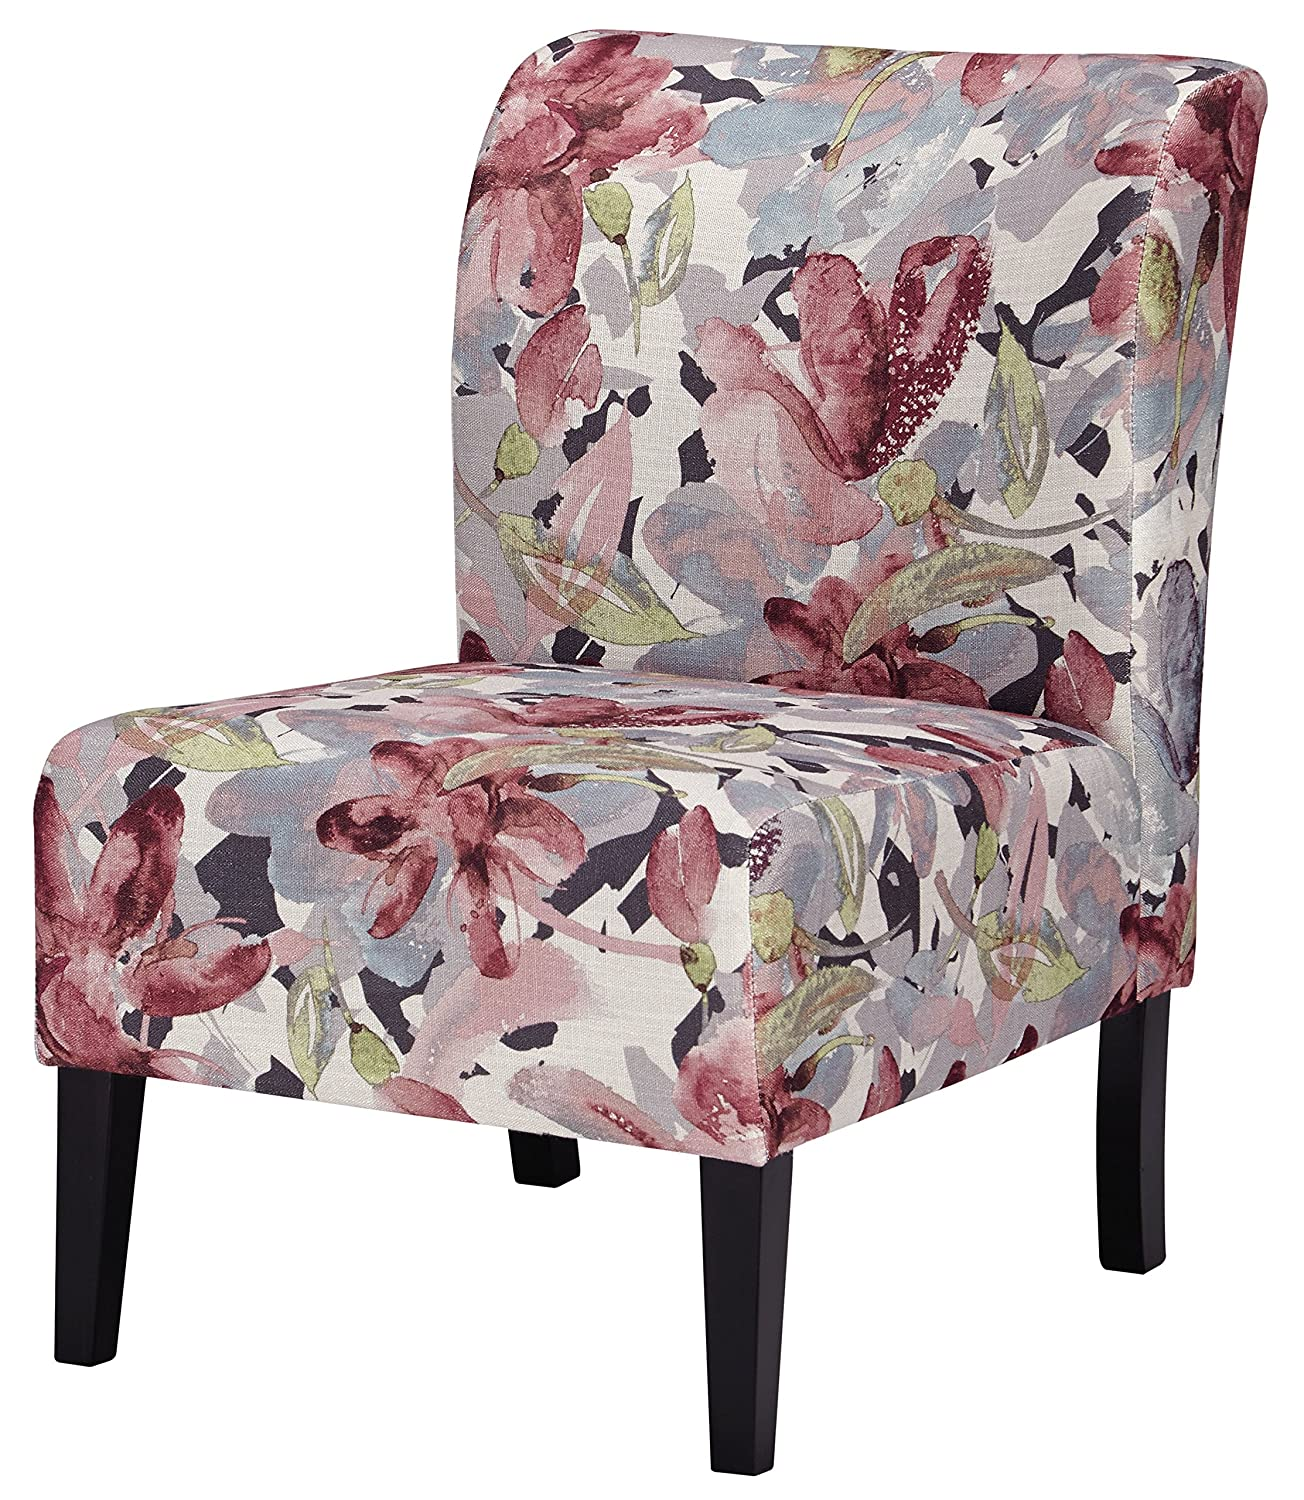 Amazon com ashley furniture signature design triptis accent chair contemporary watercolor floral in shades of plum charcoal dark brown legs